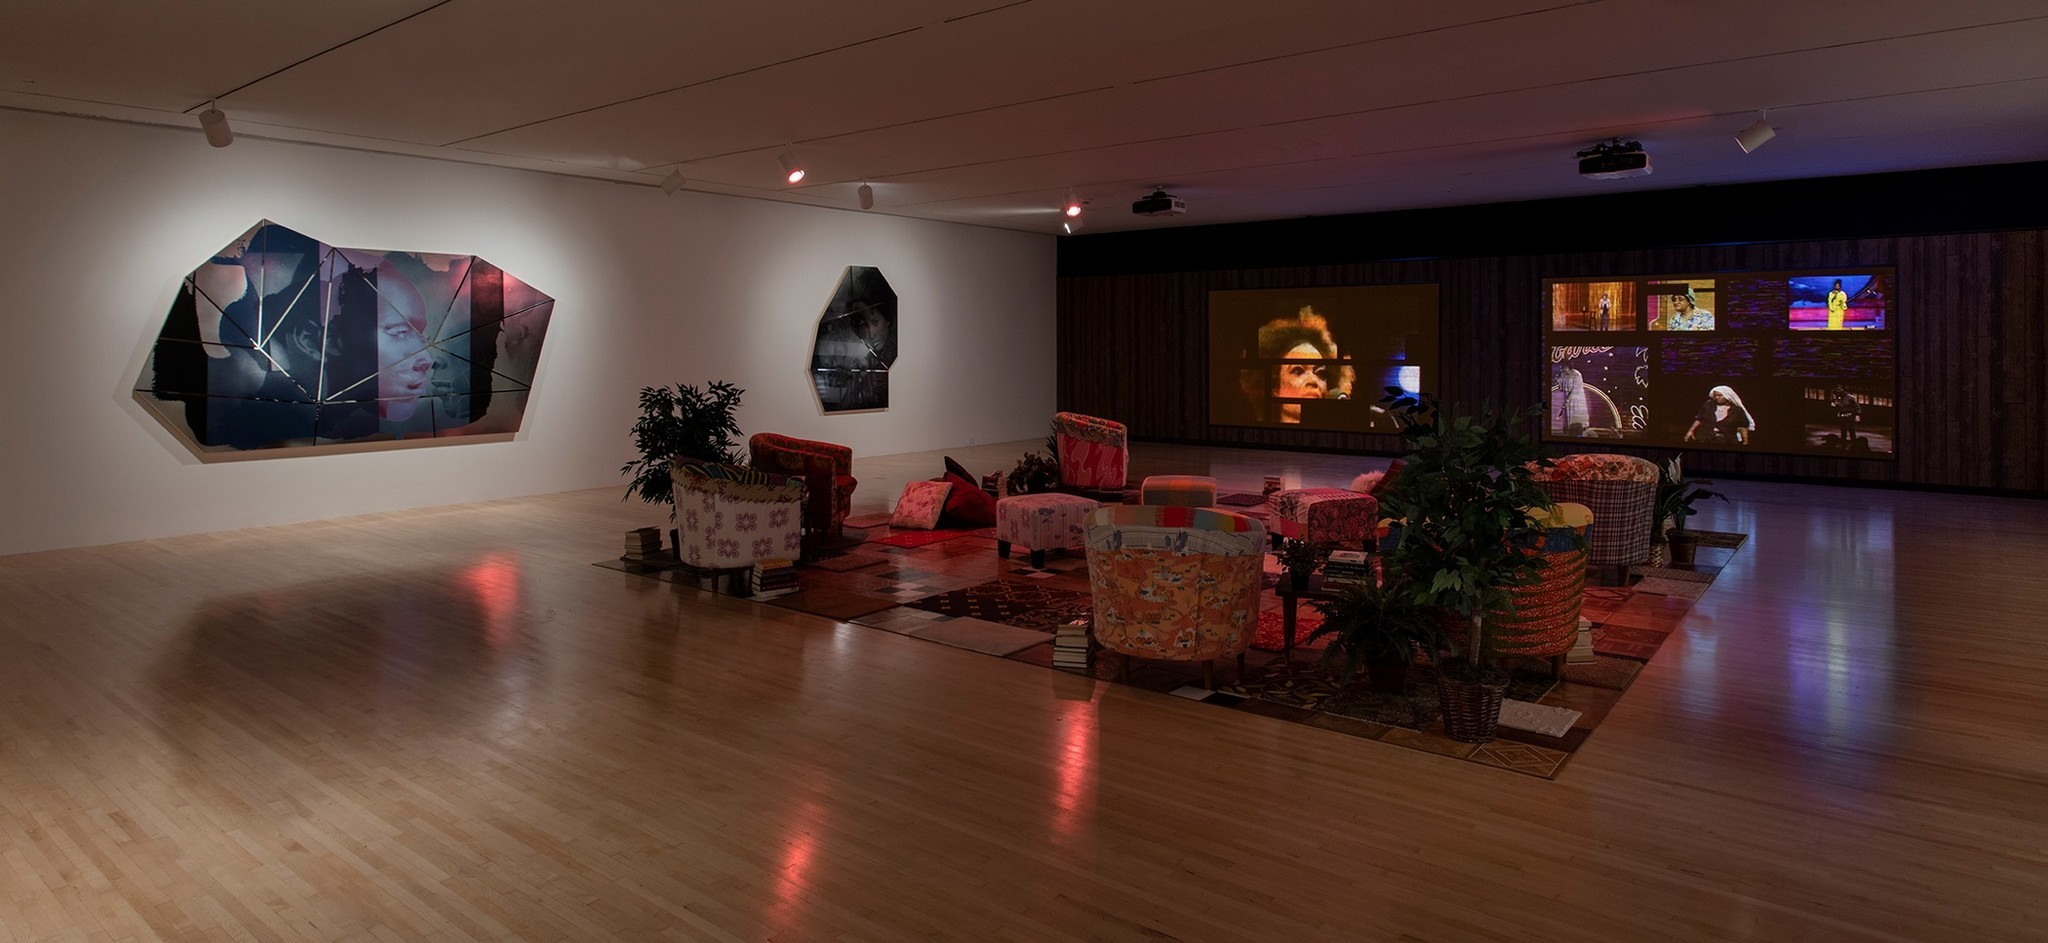 "Installation view of ""Mickalene Thomas: Do I Look Like a Lady?"" at MOCA."